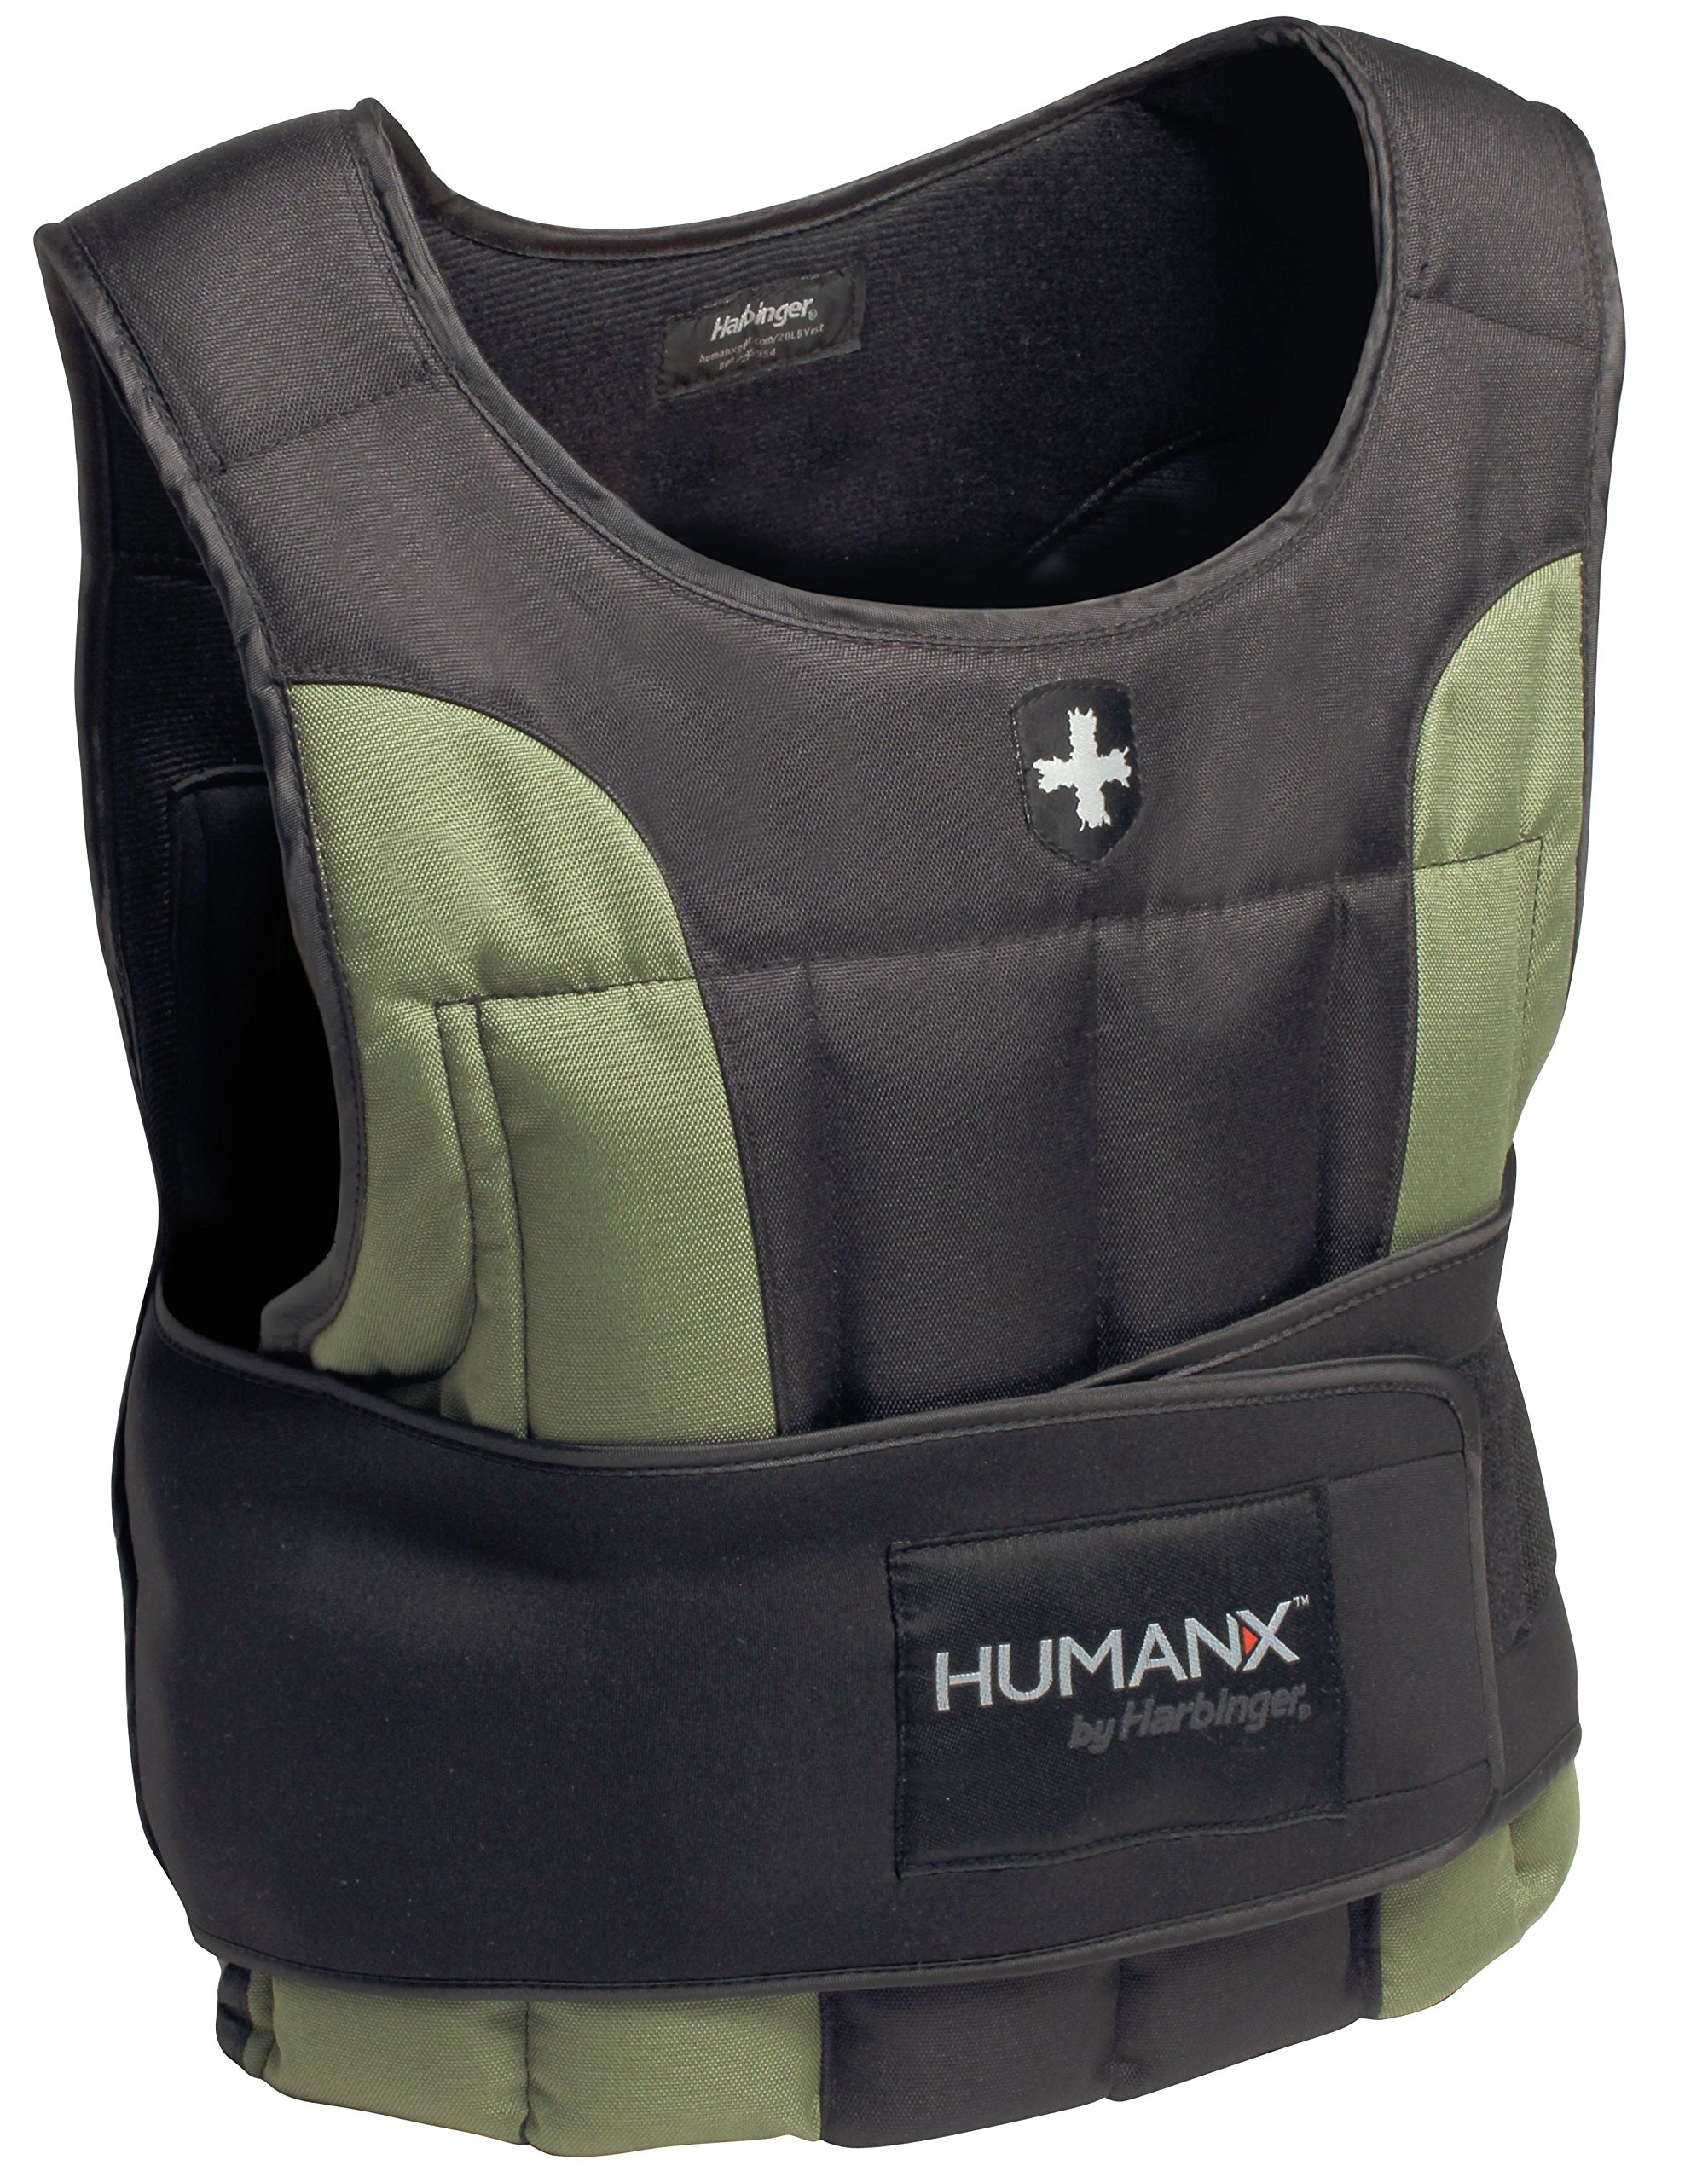 Harbinger HumanX 20-Pound Weight Vest, One Size, Black/Green by Harbinger